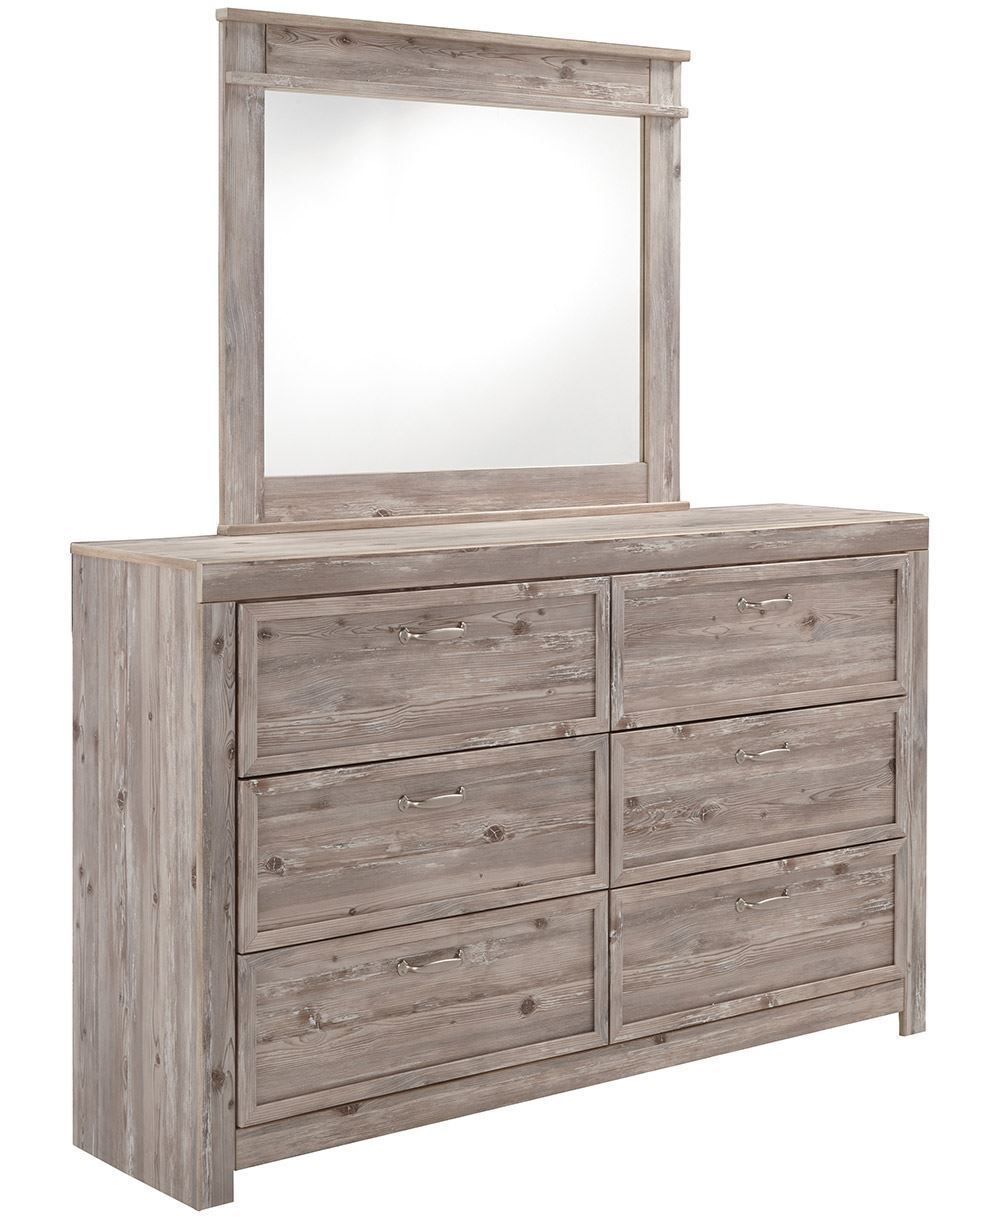 Picture of Willabry Dresser and Mirror Set